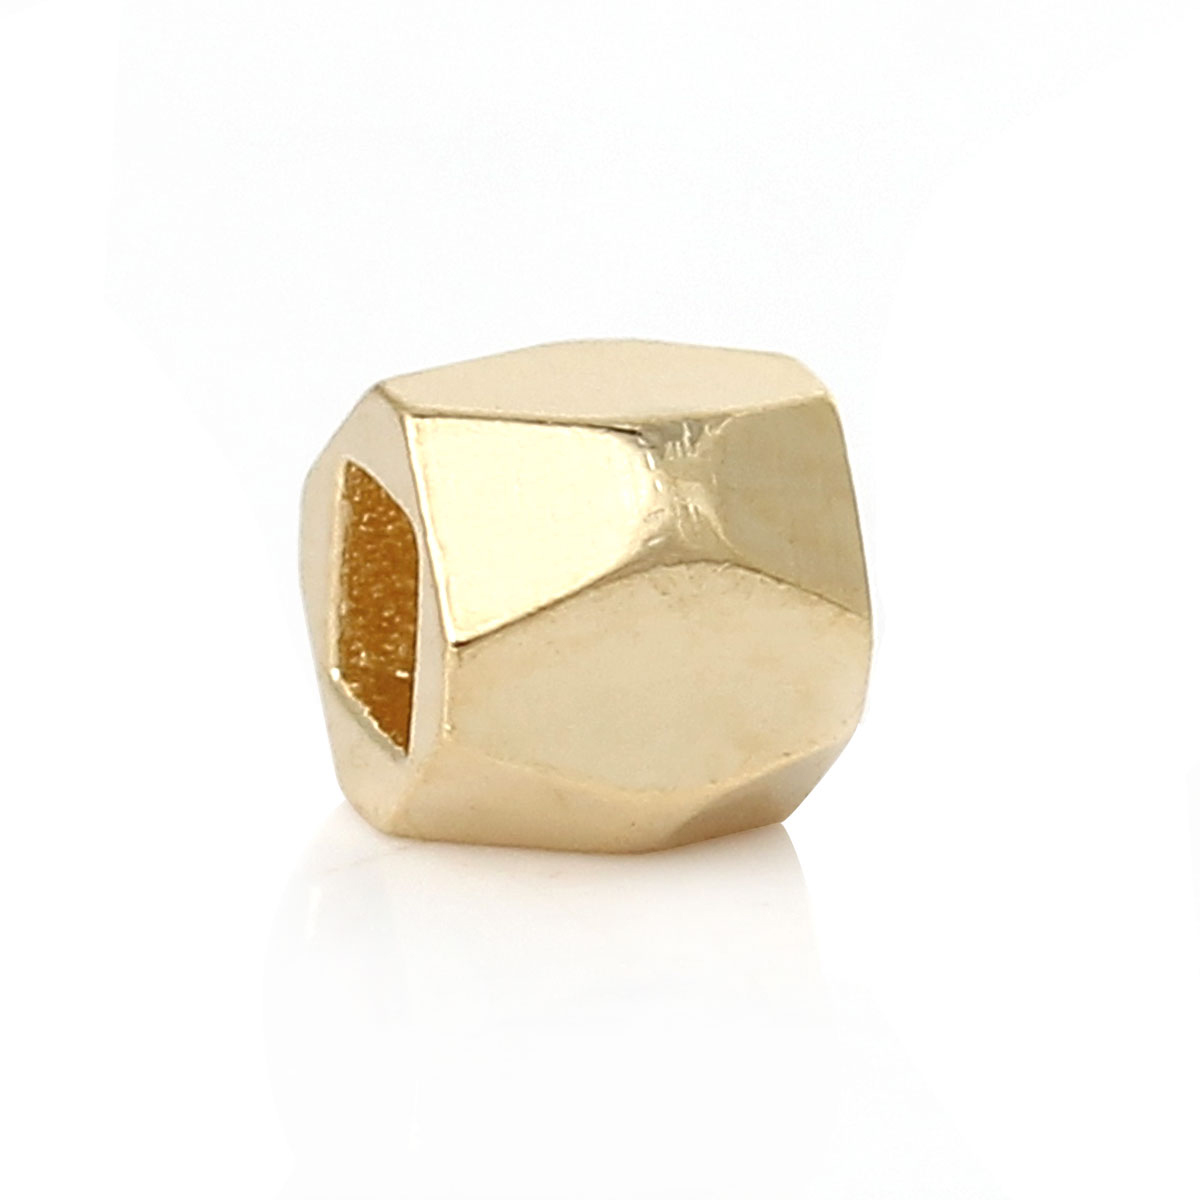 1/8 Doreenbeads Copper Spacer Beads Cube Gold Color Faceted About 3.4mm ,hole:approx 1.7mm X 1.7mm,5 Pieces Beautiful In Colour 1/8 x 3.4mm